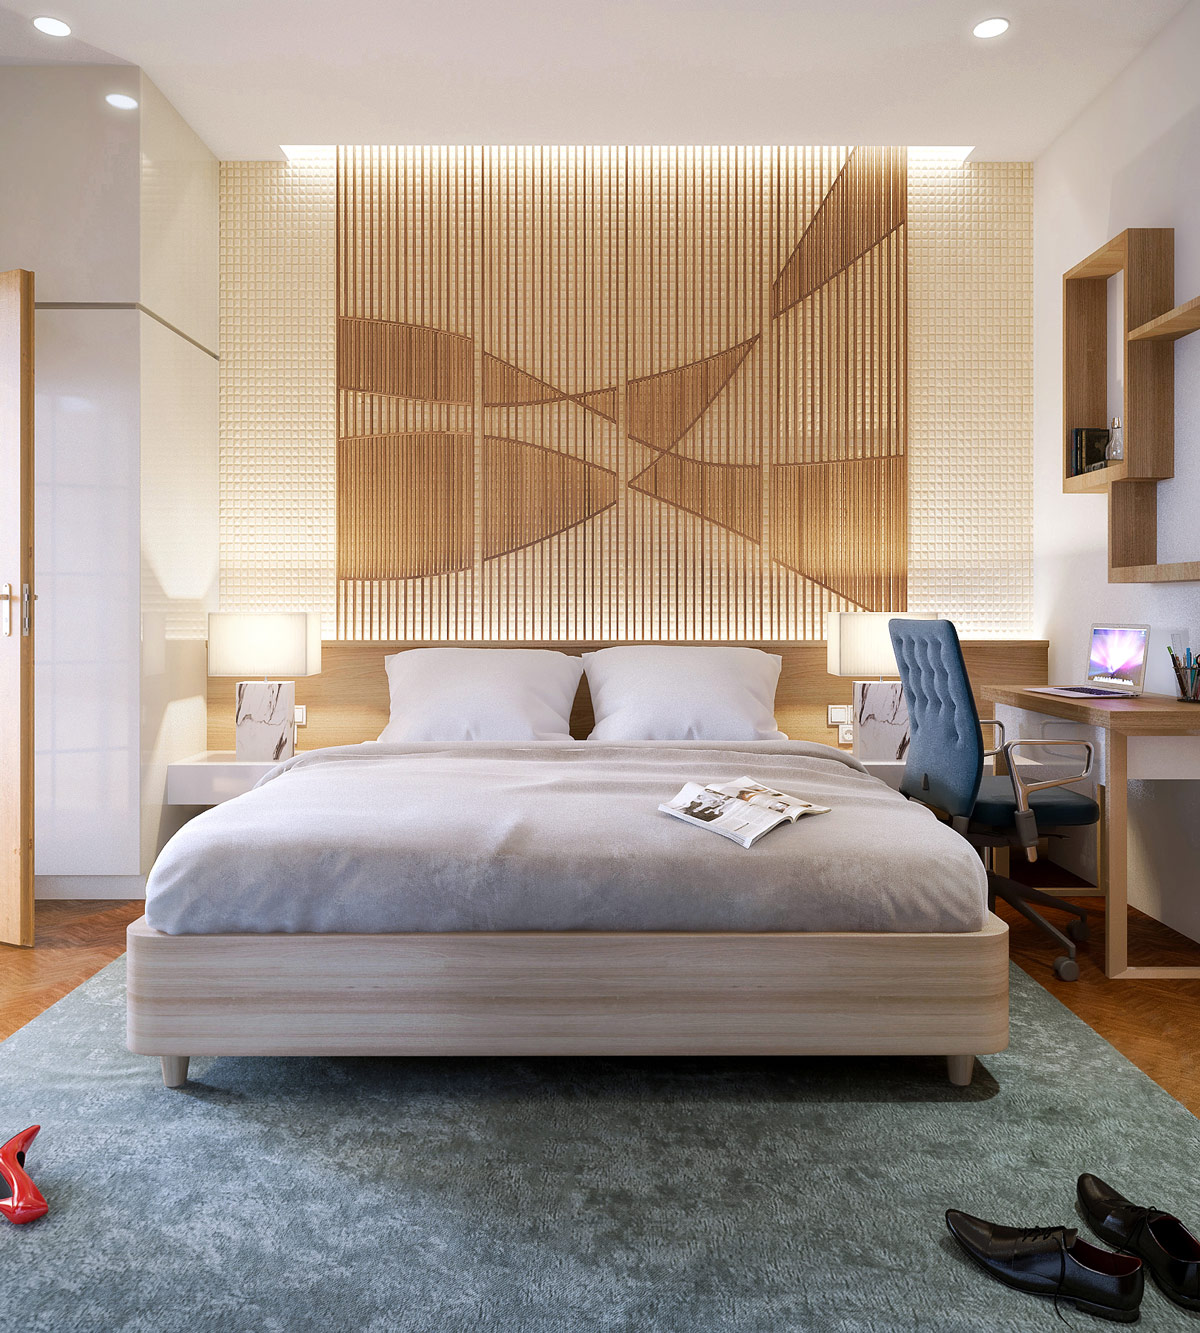 bedroom-accent-wall-slats-intertwined-pattern